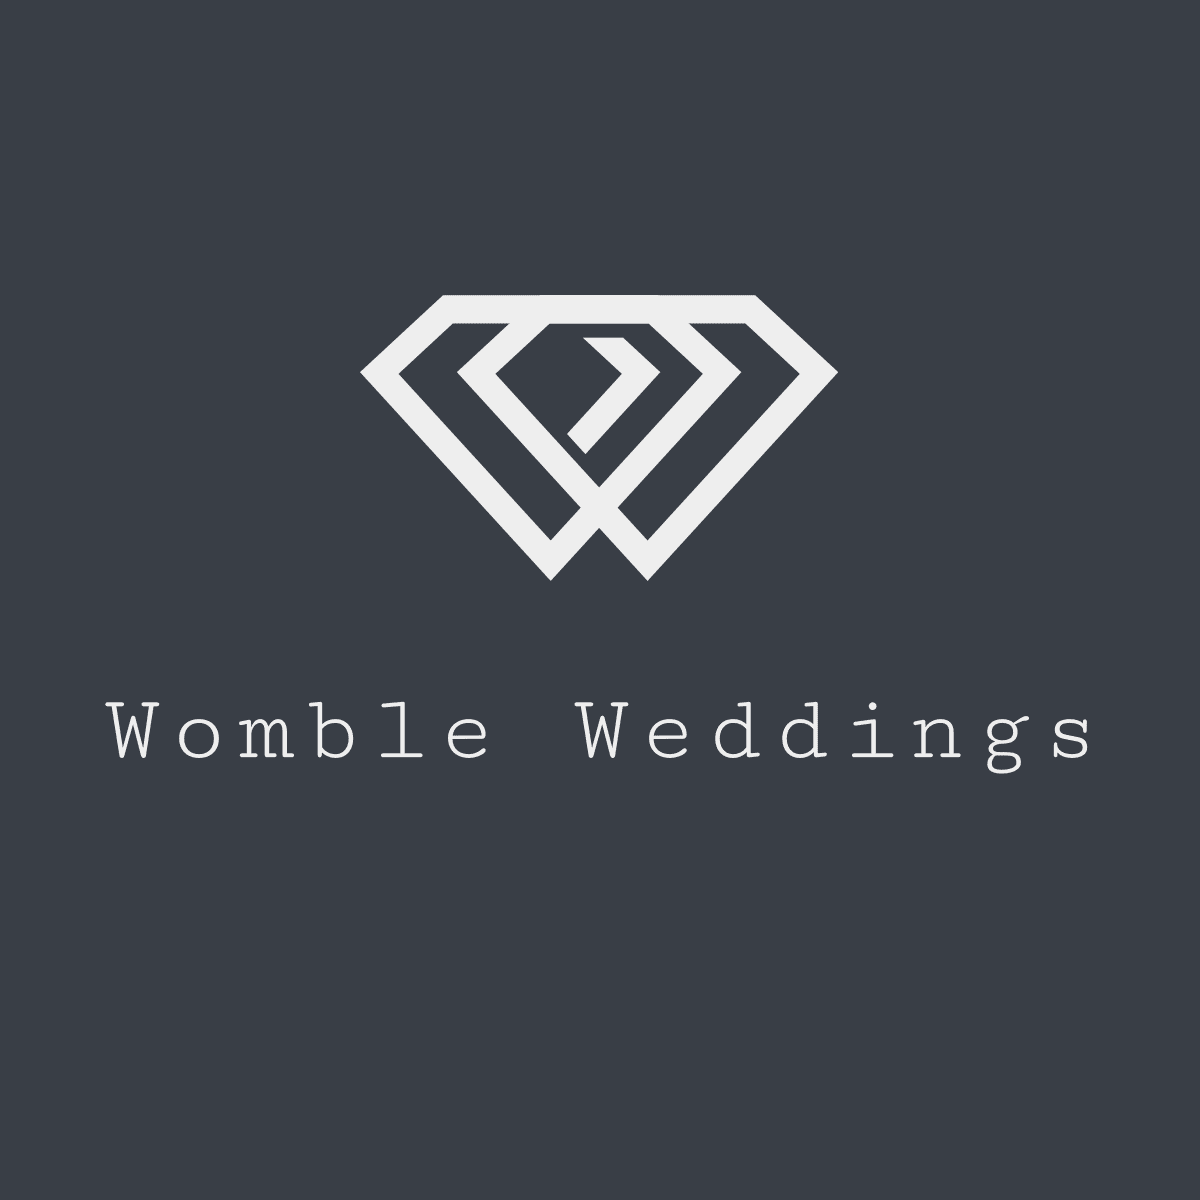 Womble Weddings primary image